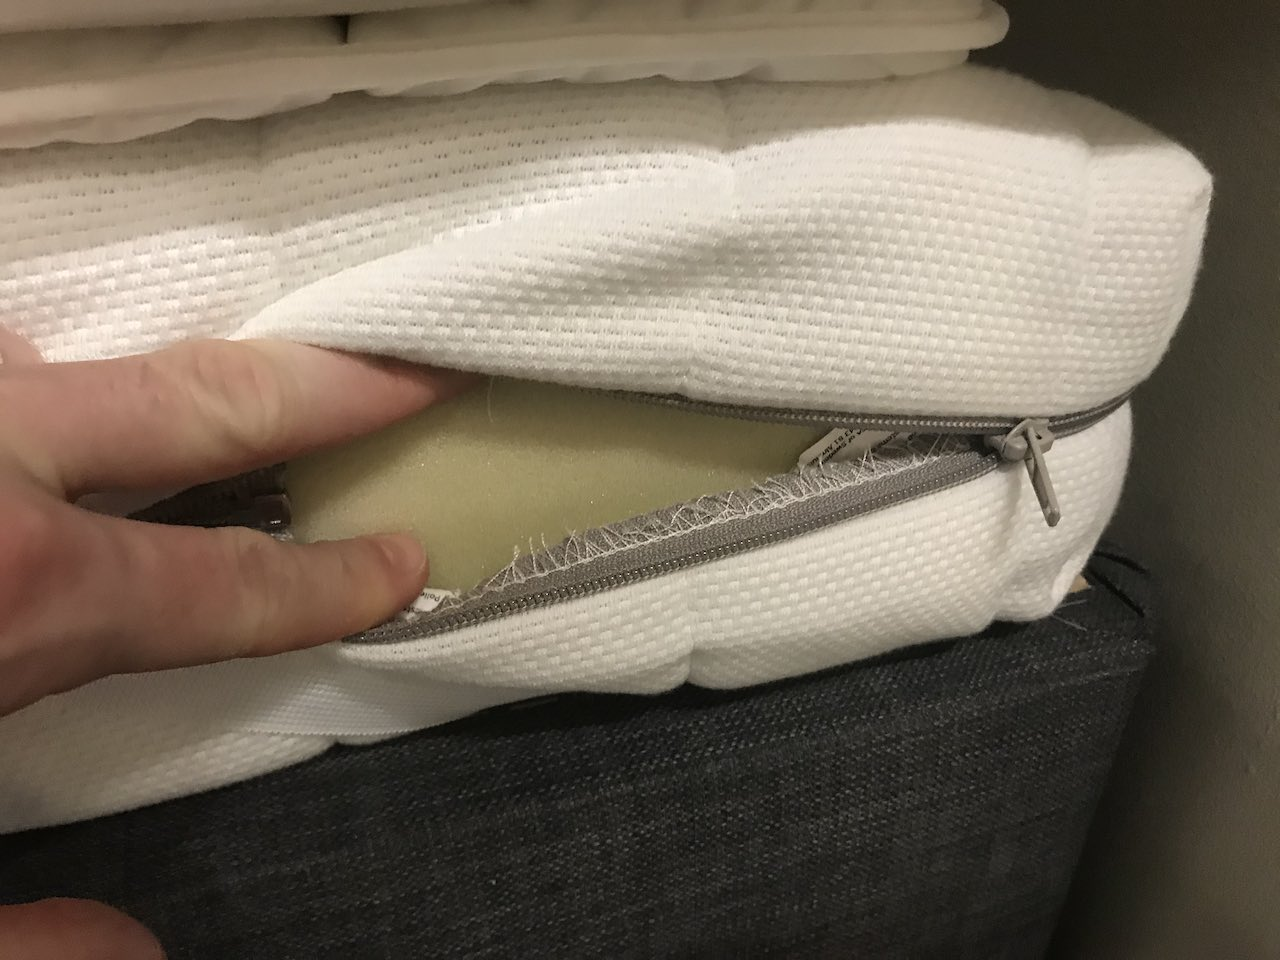 The foam inside an ikea mattress being shown